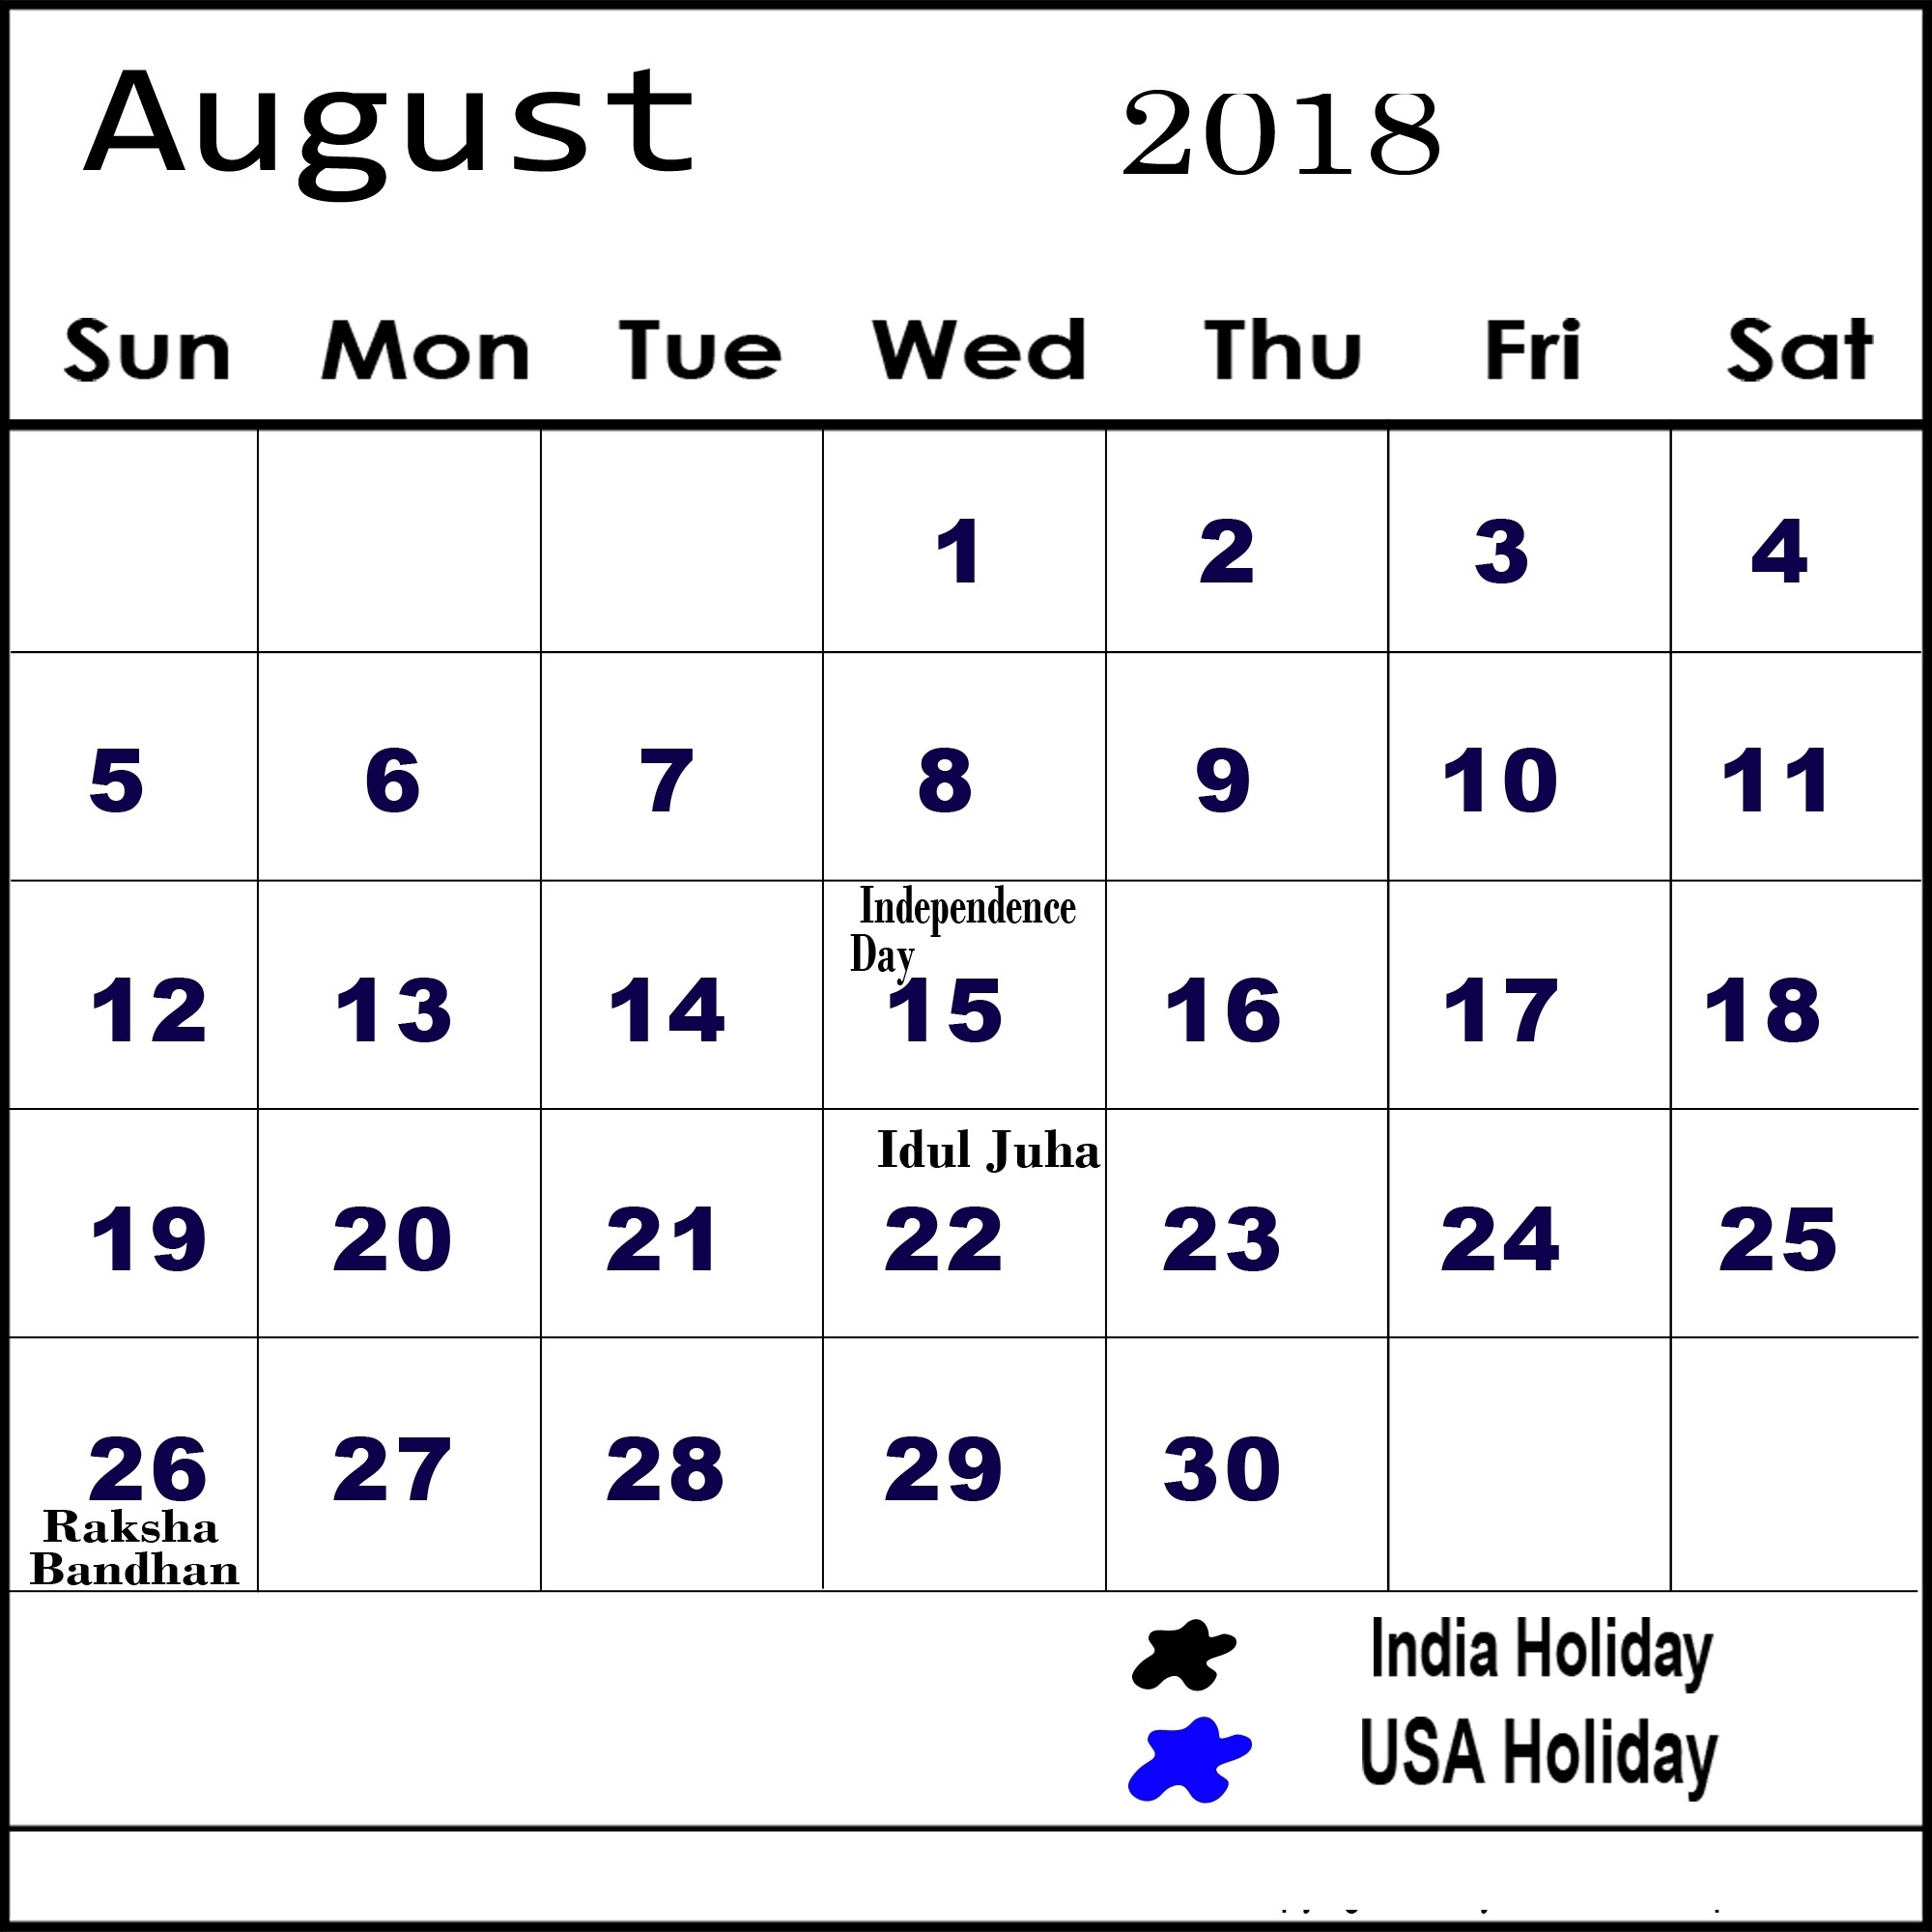 August 2018 Calendar With Daily Holidays And Events Calendar With Holidays And Events